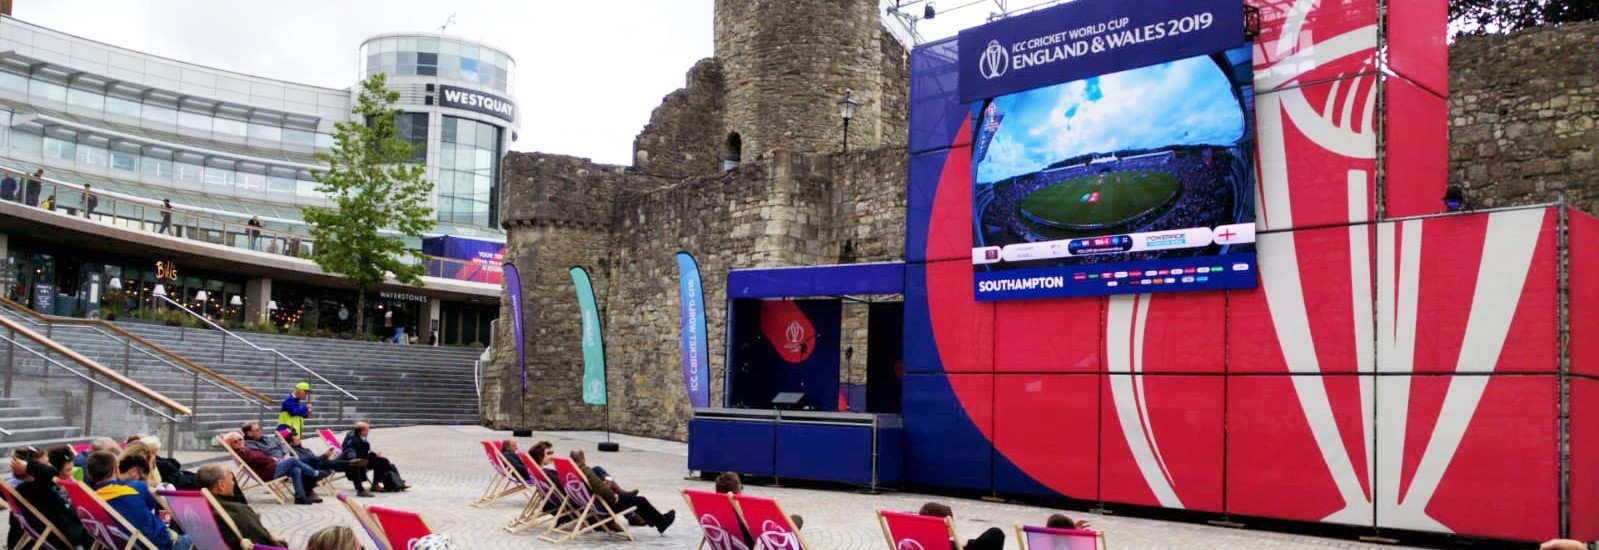 The Cricket World Cup in Southampton